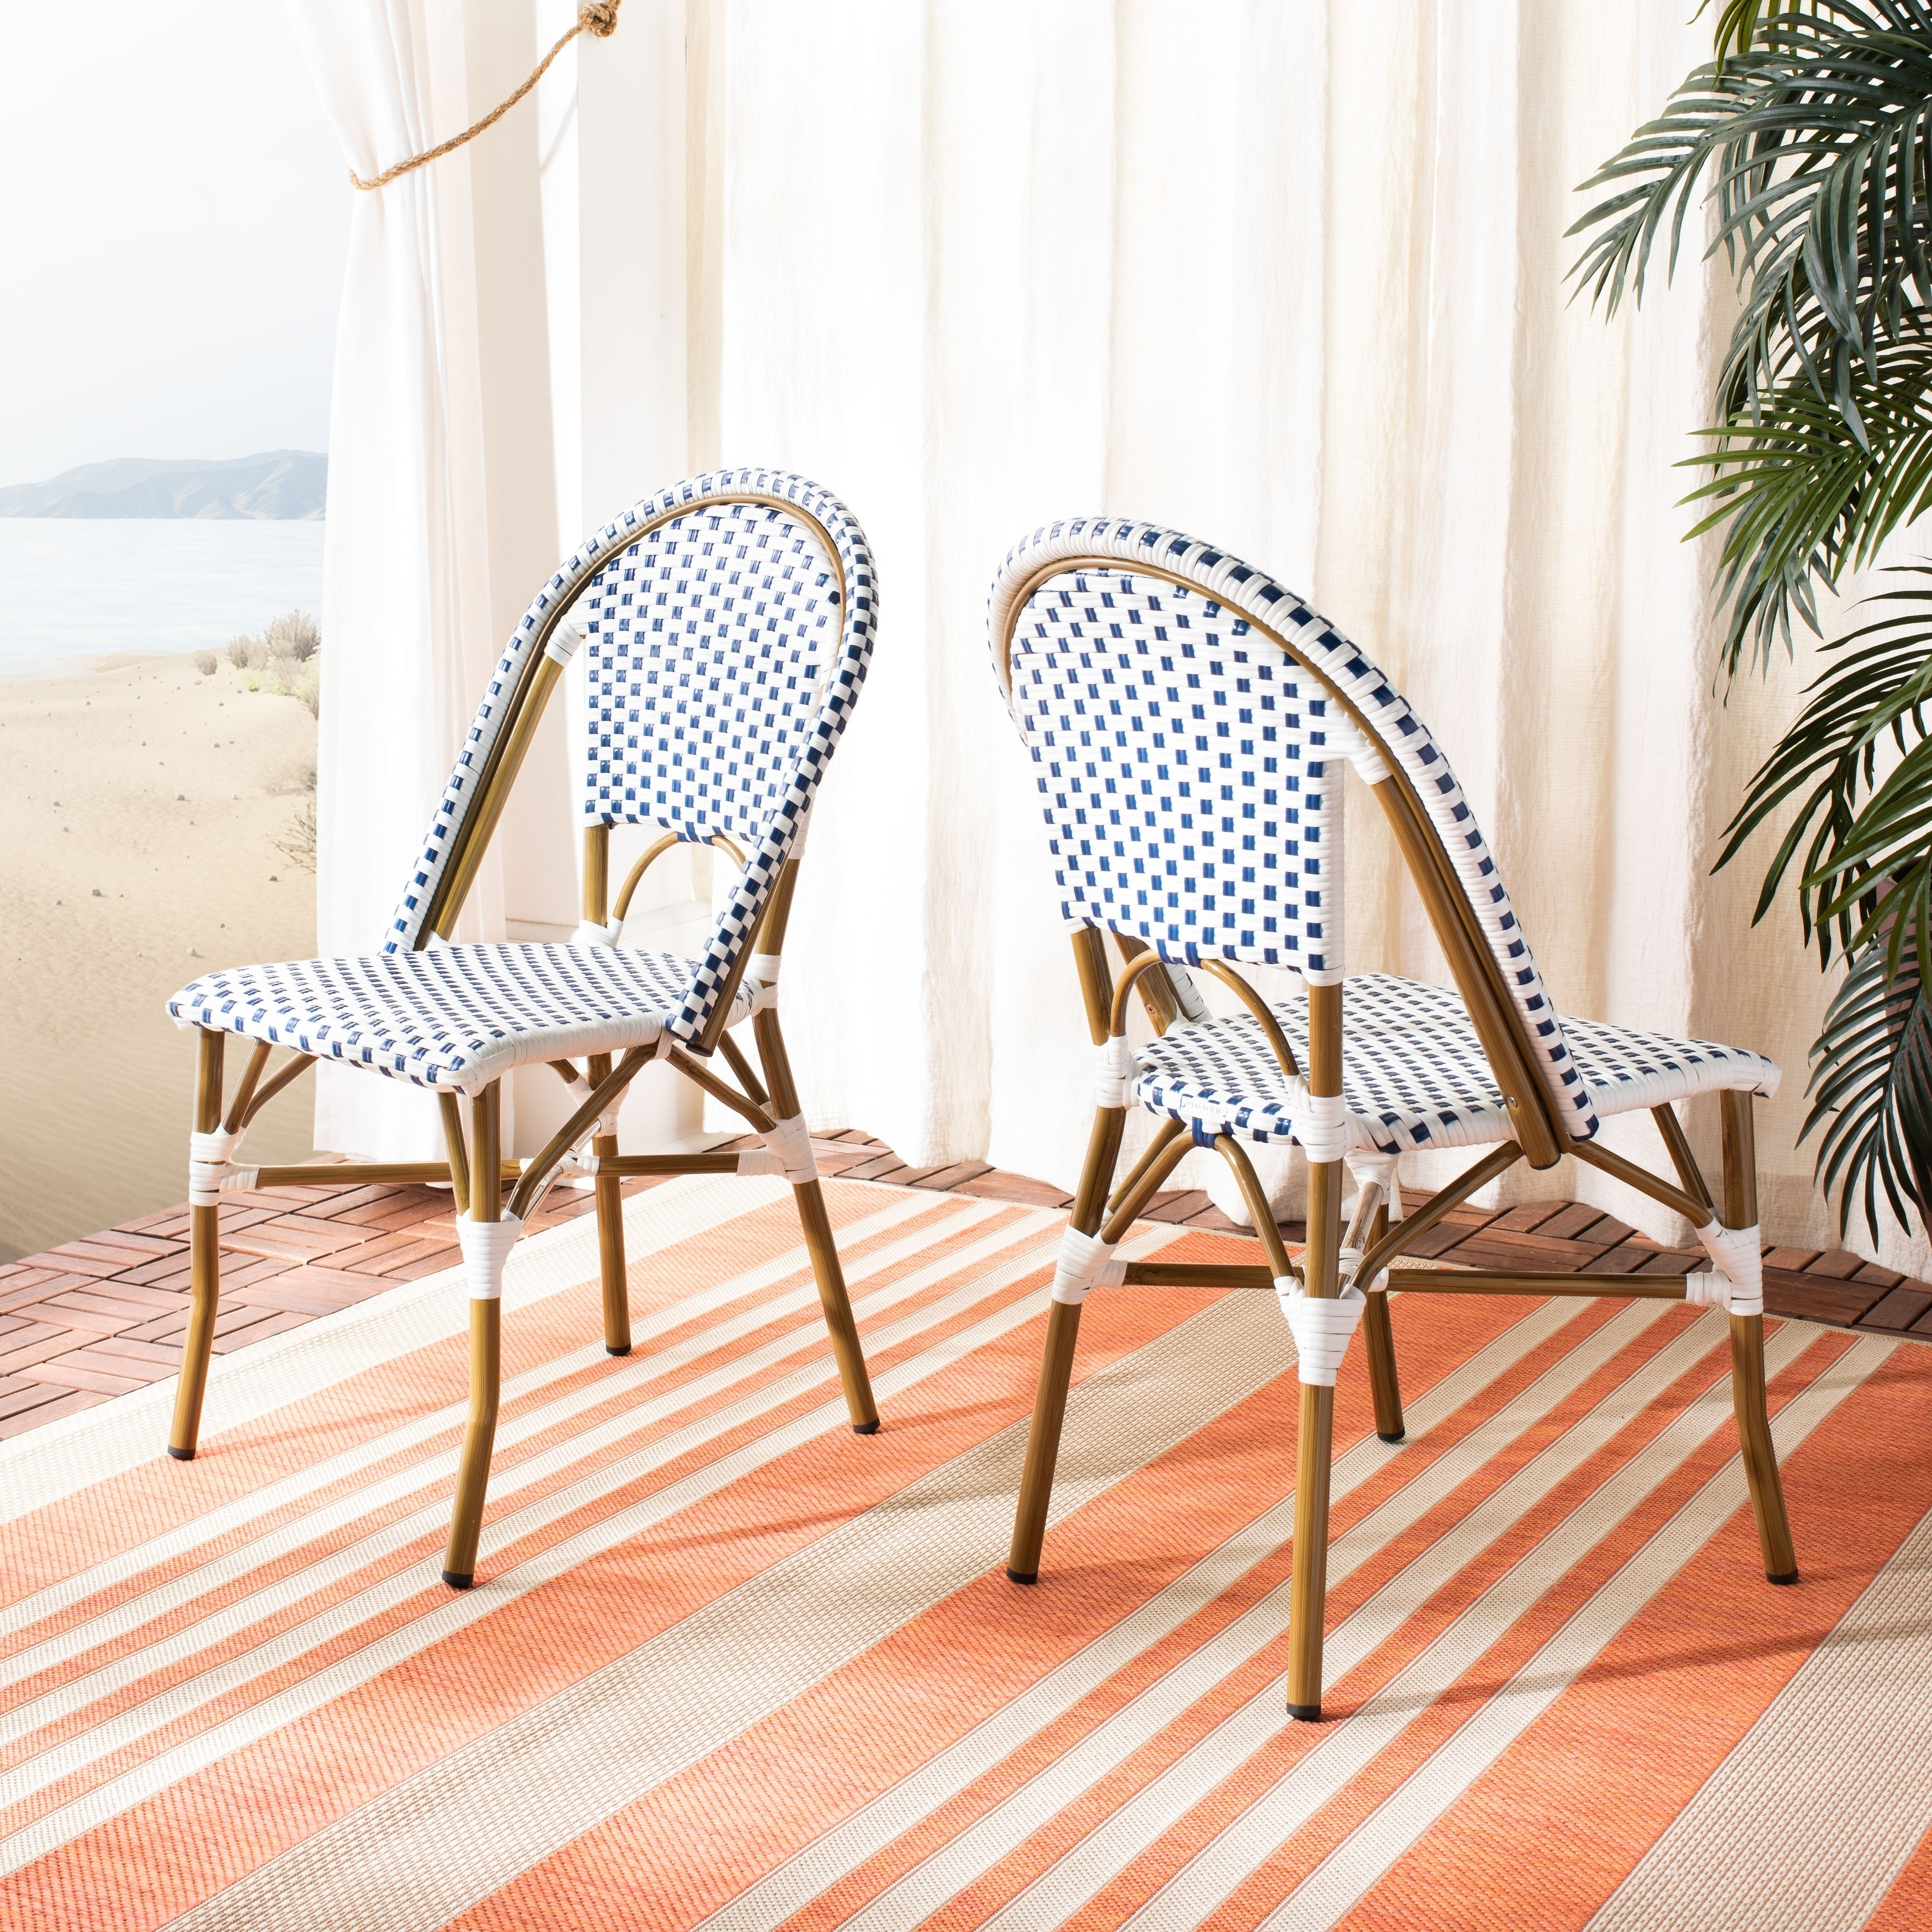 buy online 5f336 b46c4 Safavieh Dining Rural Woven Salcha Blue/ White Indoor/ Outdoor Stackable  Dining Chairs (Set of 2)